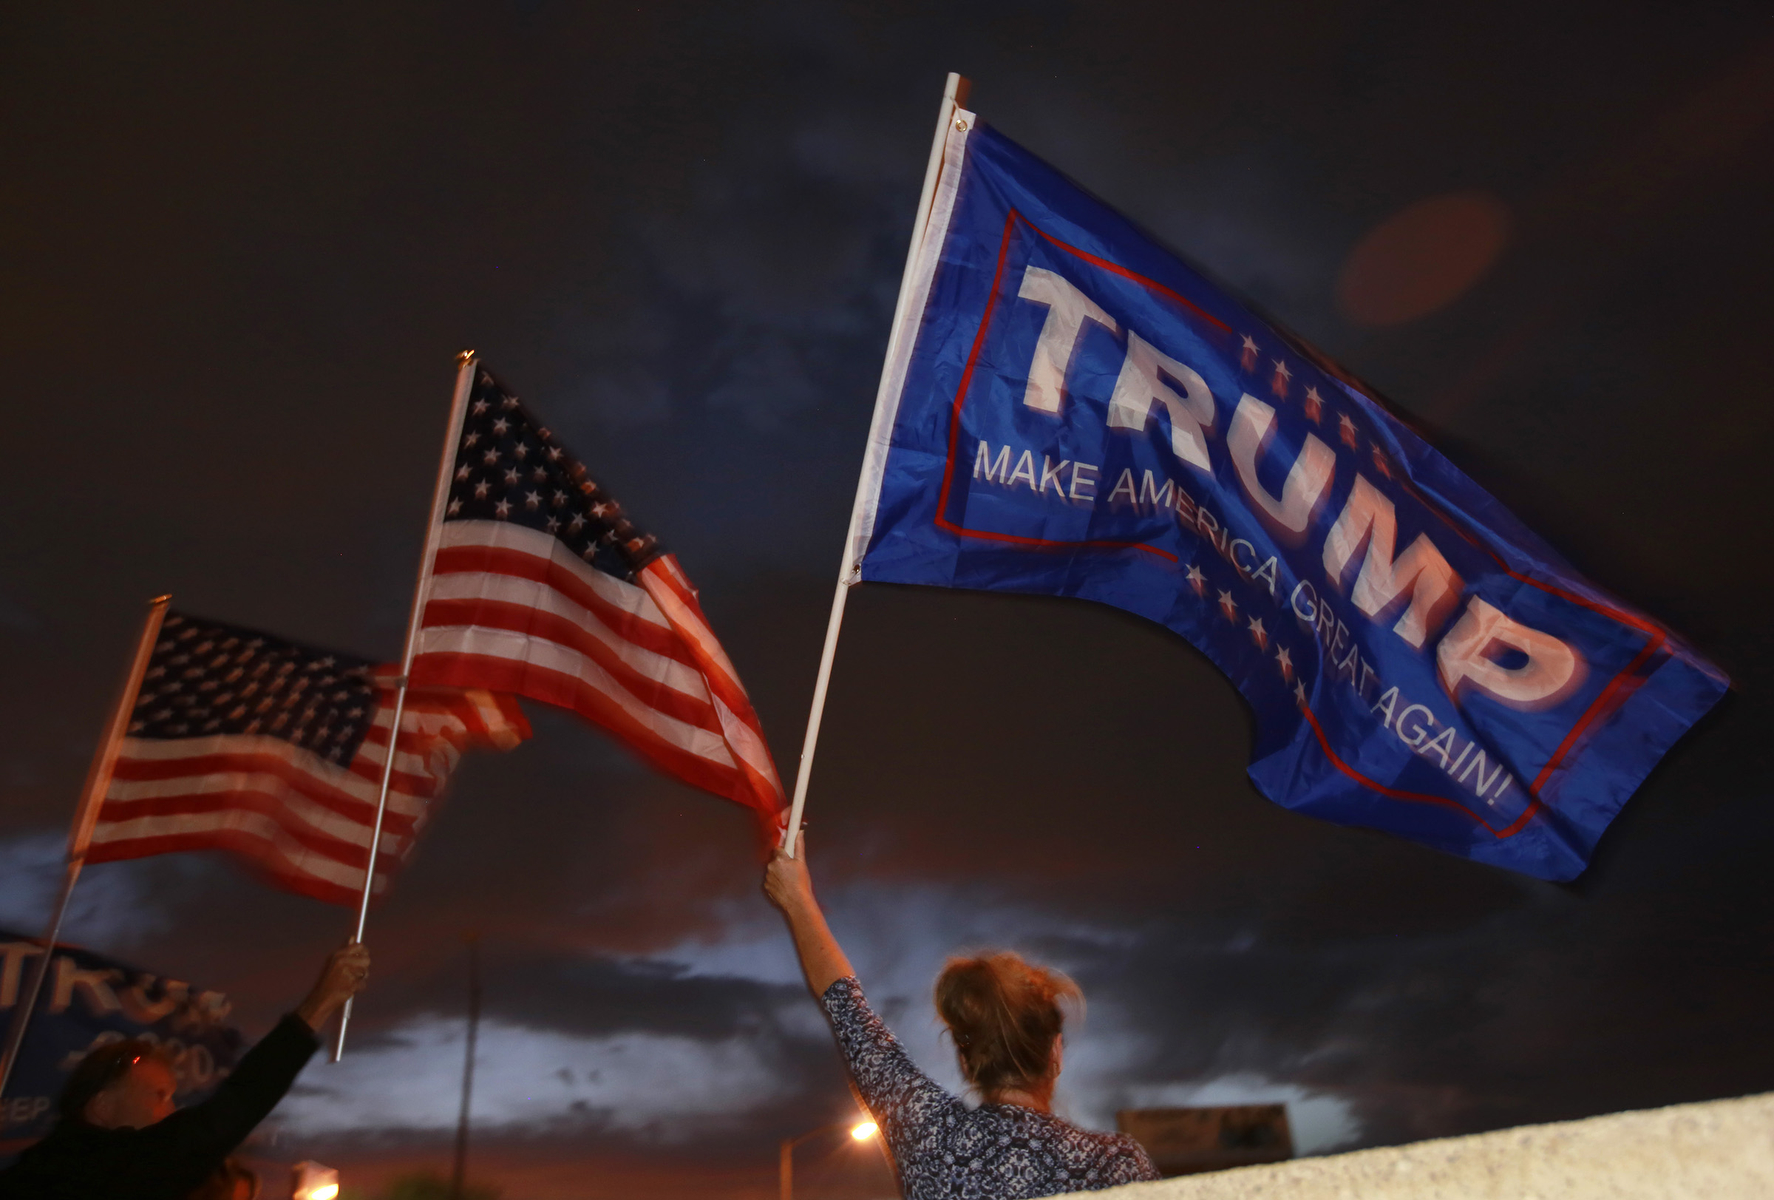 Donald Trump supporter and Las Vegas resident Maryann, last name withheld, holds a Trump flag and protests outside Clark County Election Department November 6, 2020, in North Las Vegas. (Photo by Ronda Churchill/AFP)